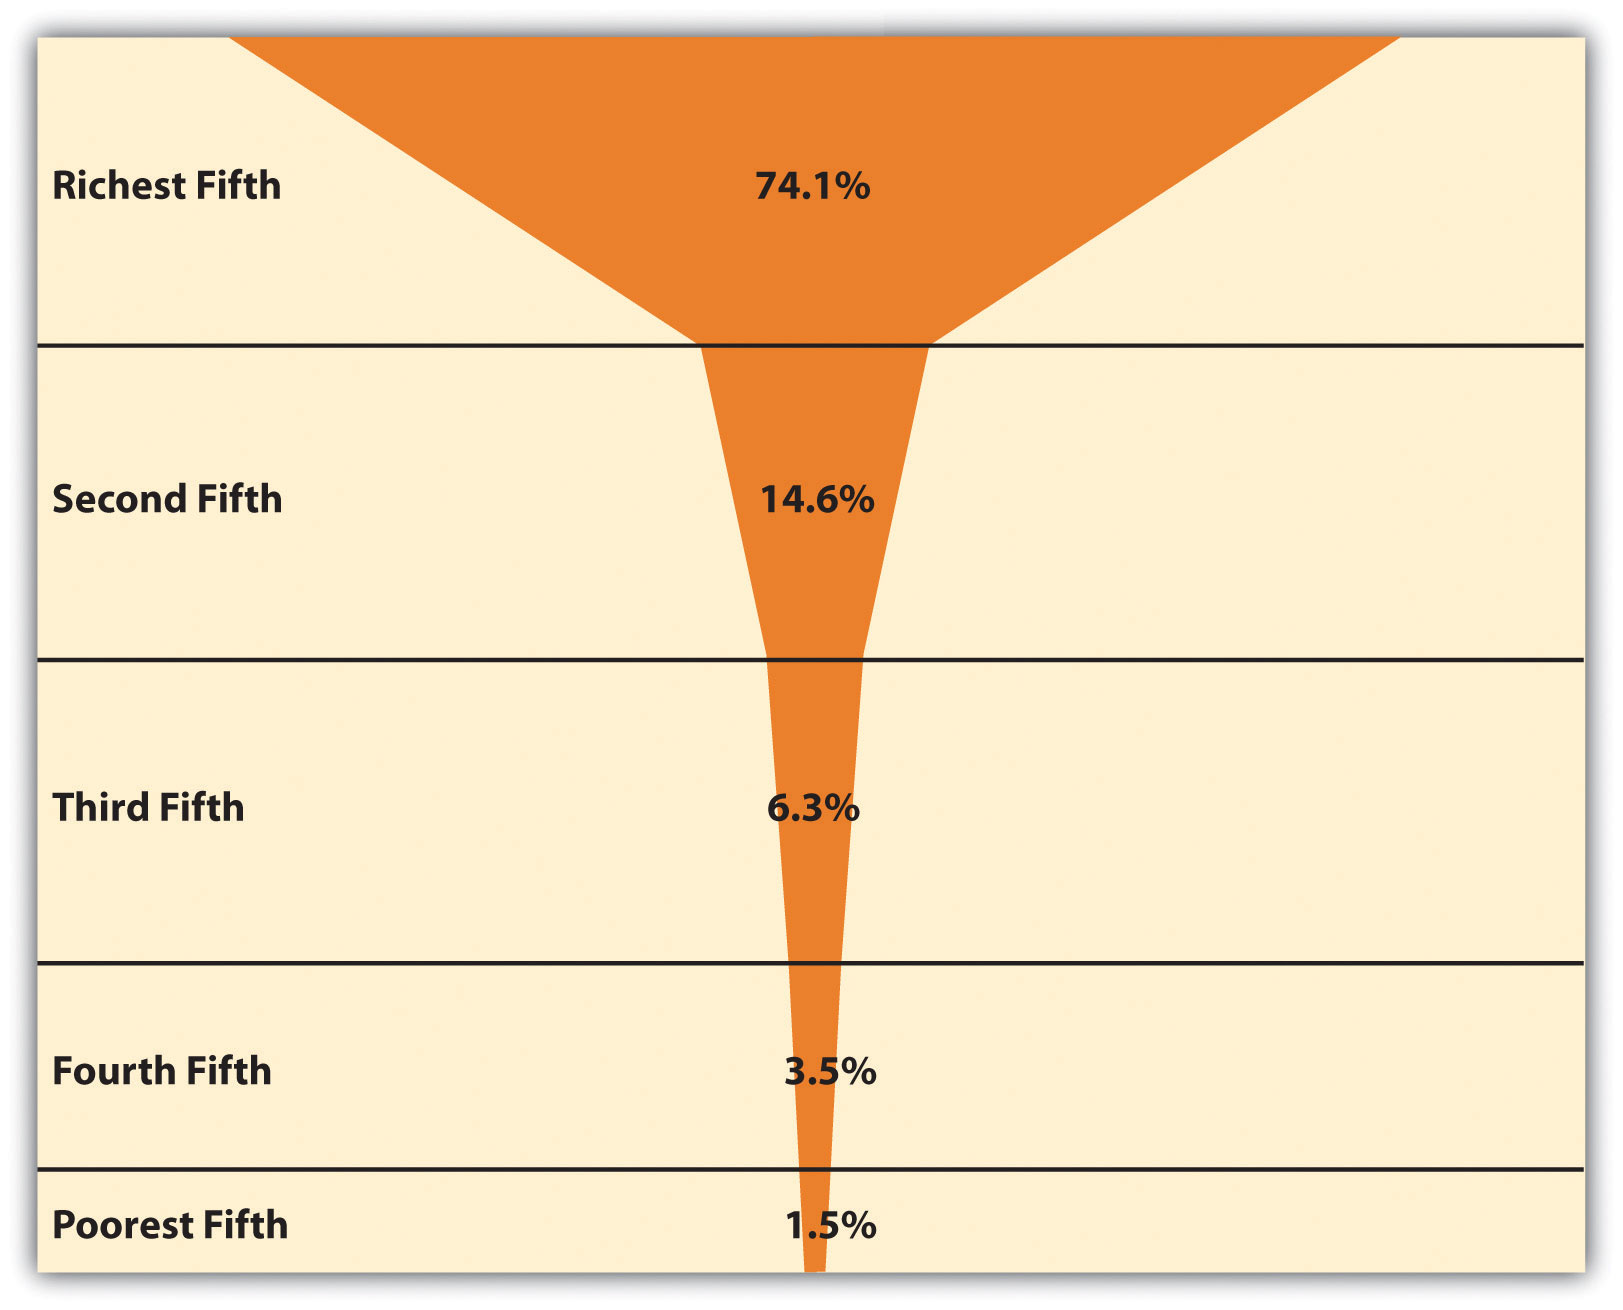 Global Income Distribution (Percentage of World Income Held by Each Fifth of World Population)